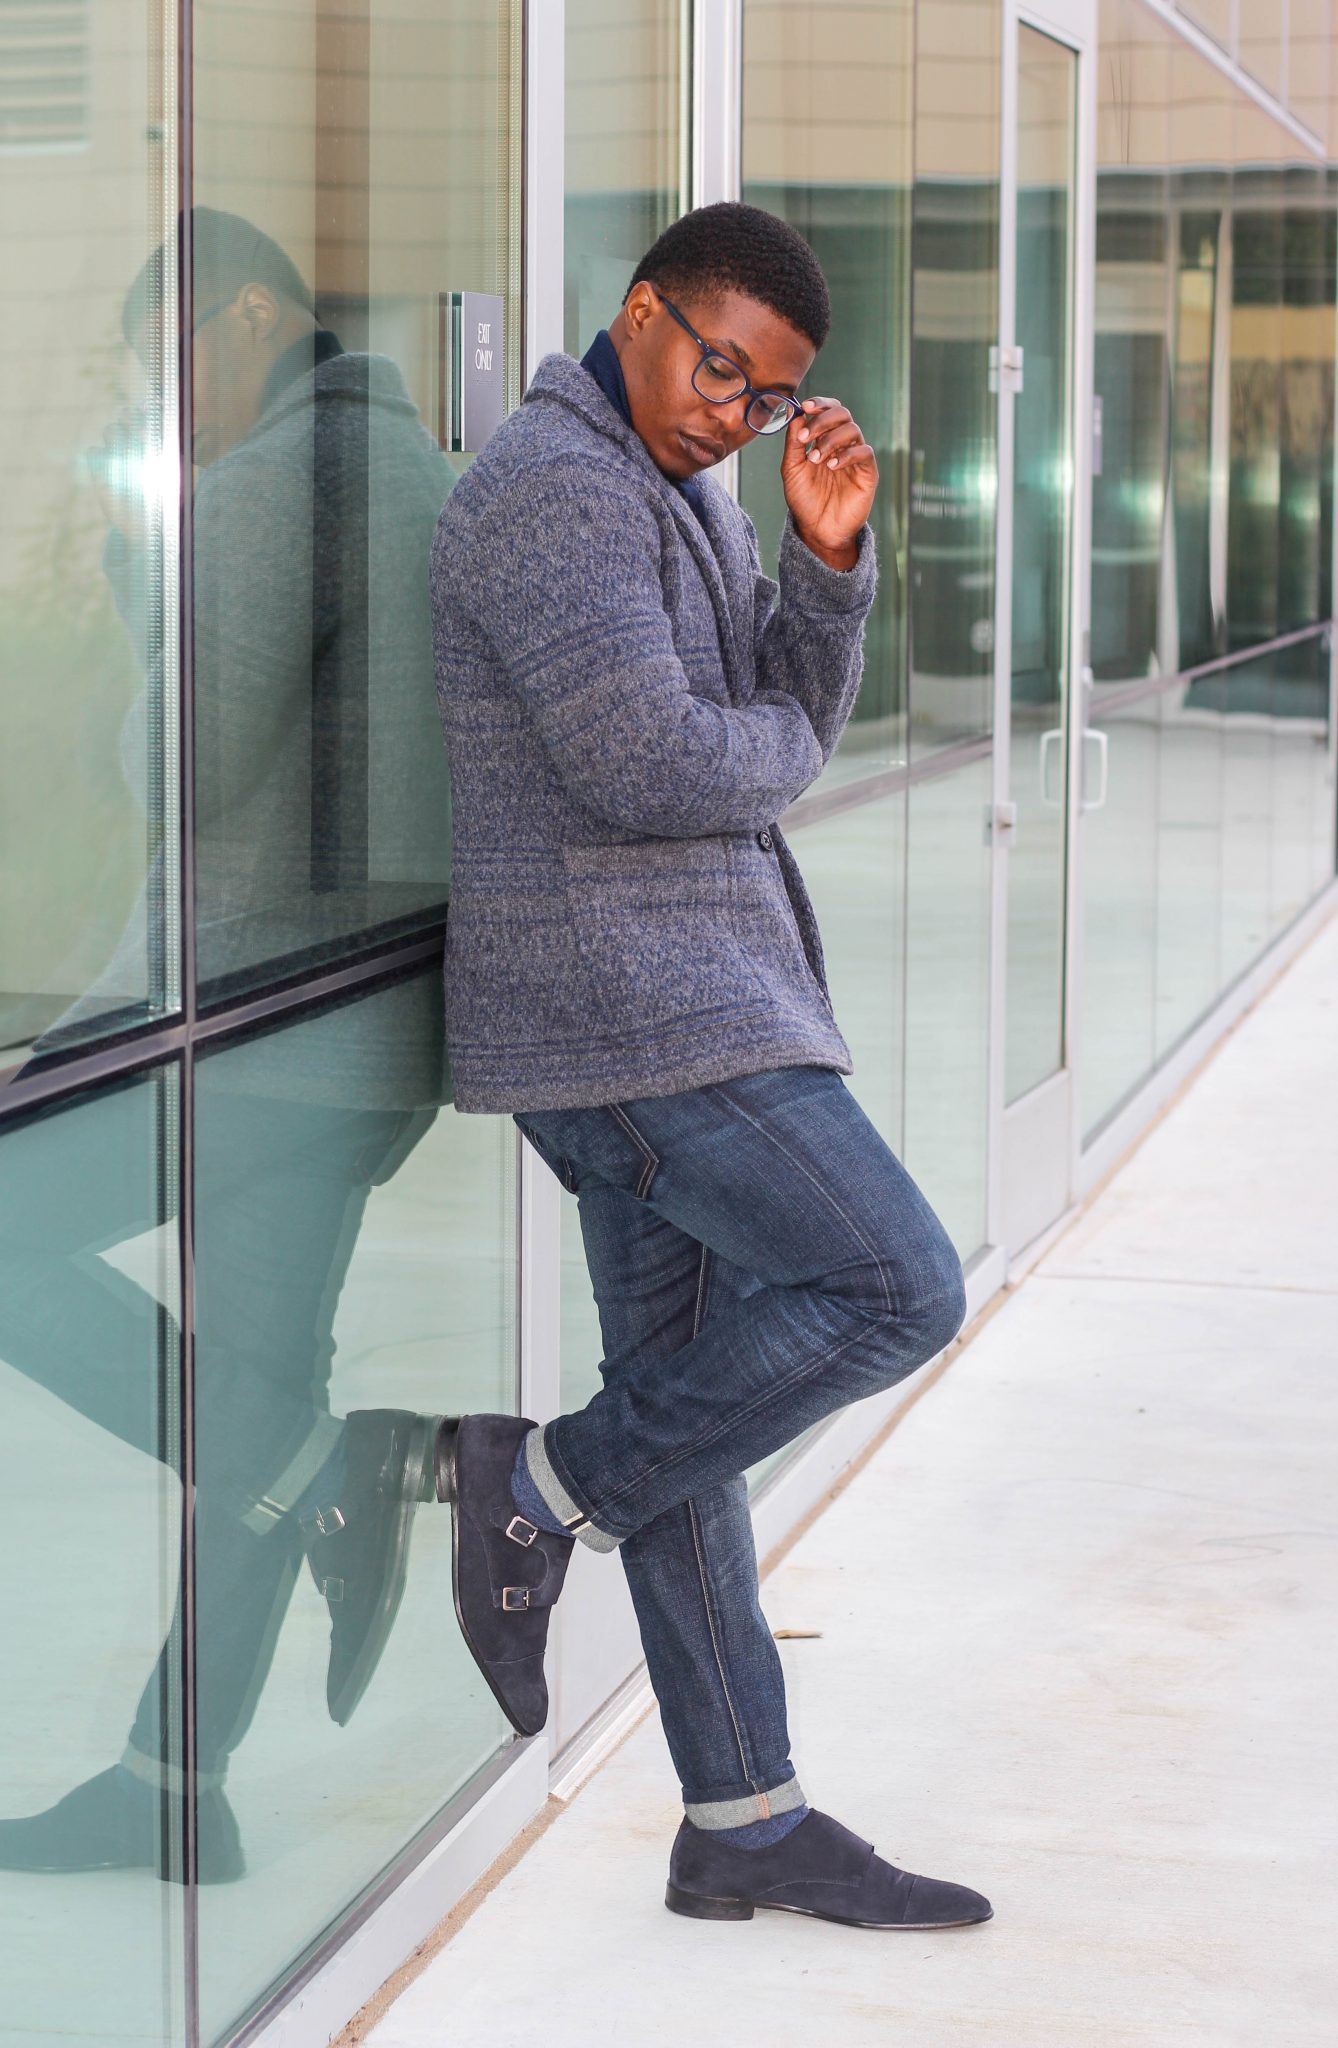 Dapper-Advisor-Akil-McLeod-African-American-man-smiling-menswear-Sweater-Blazer-Banana-Republic-eyebuydirect